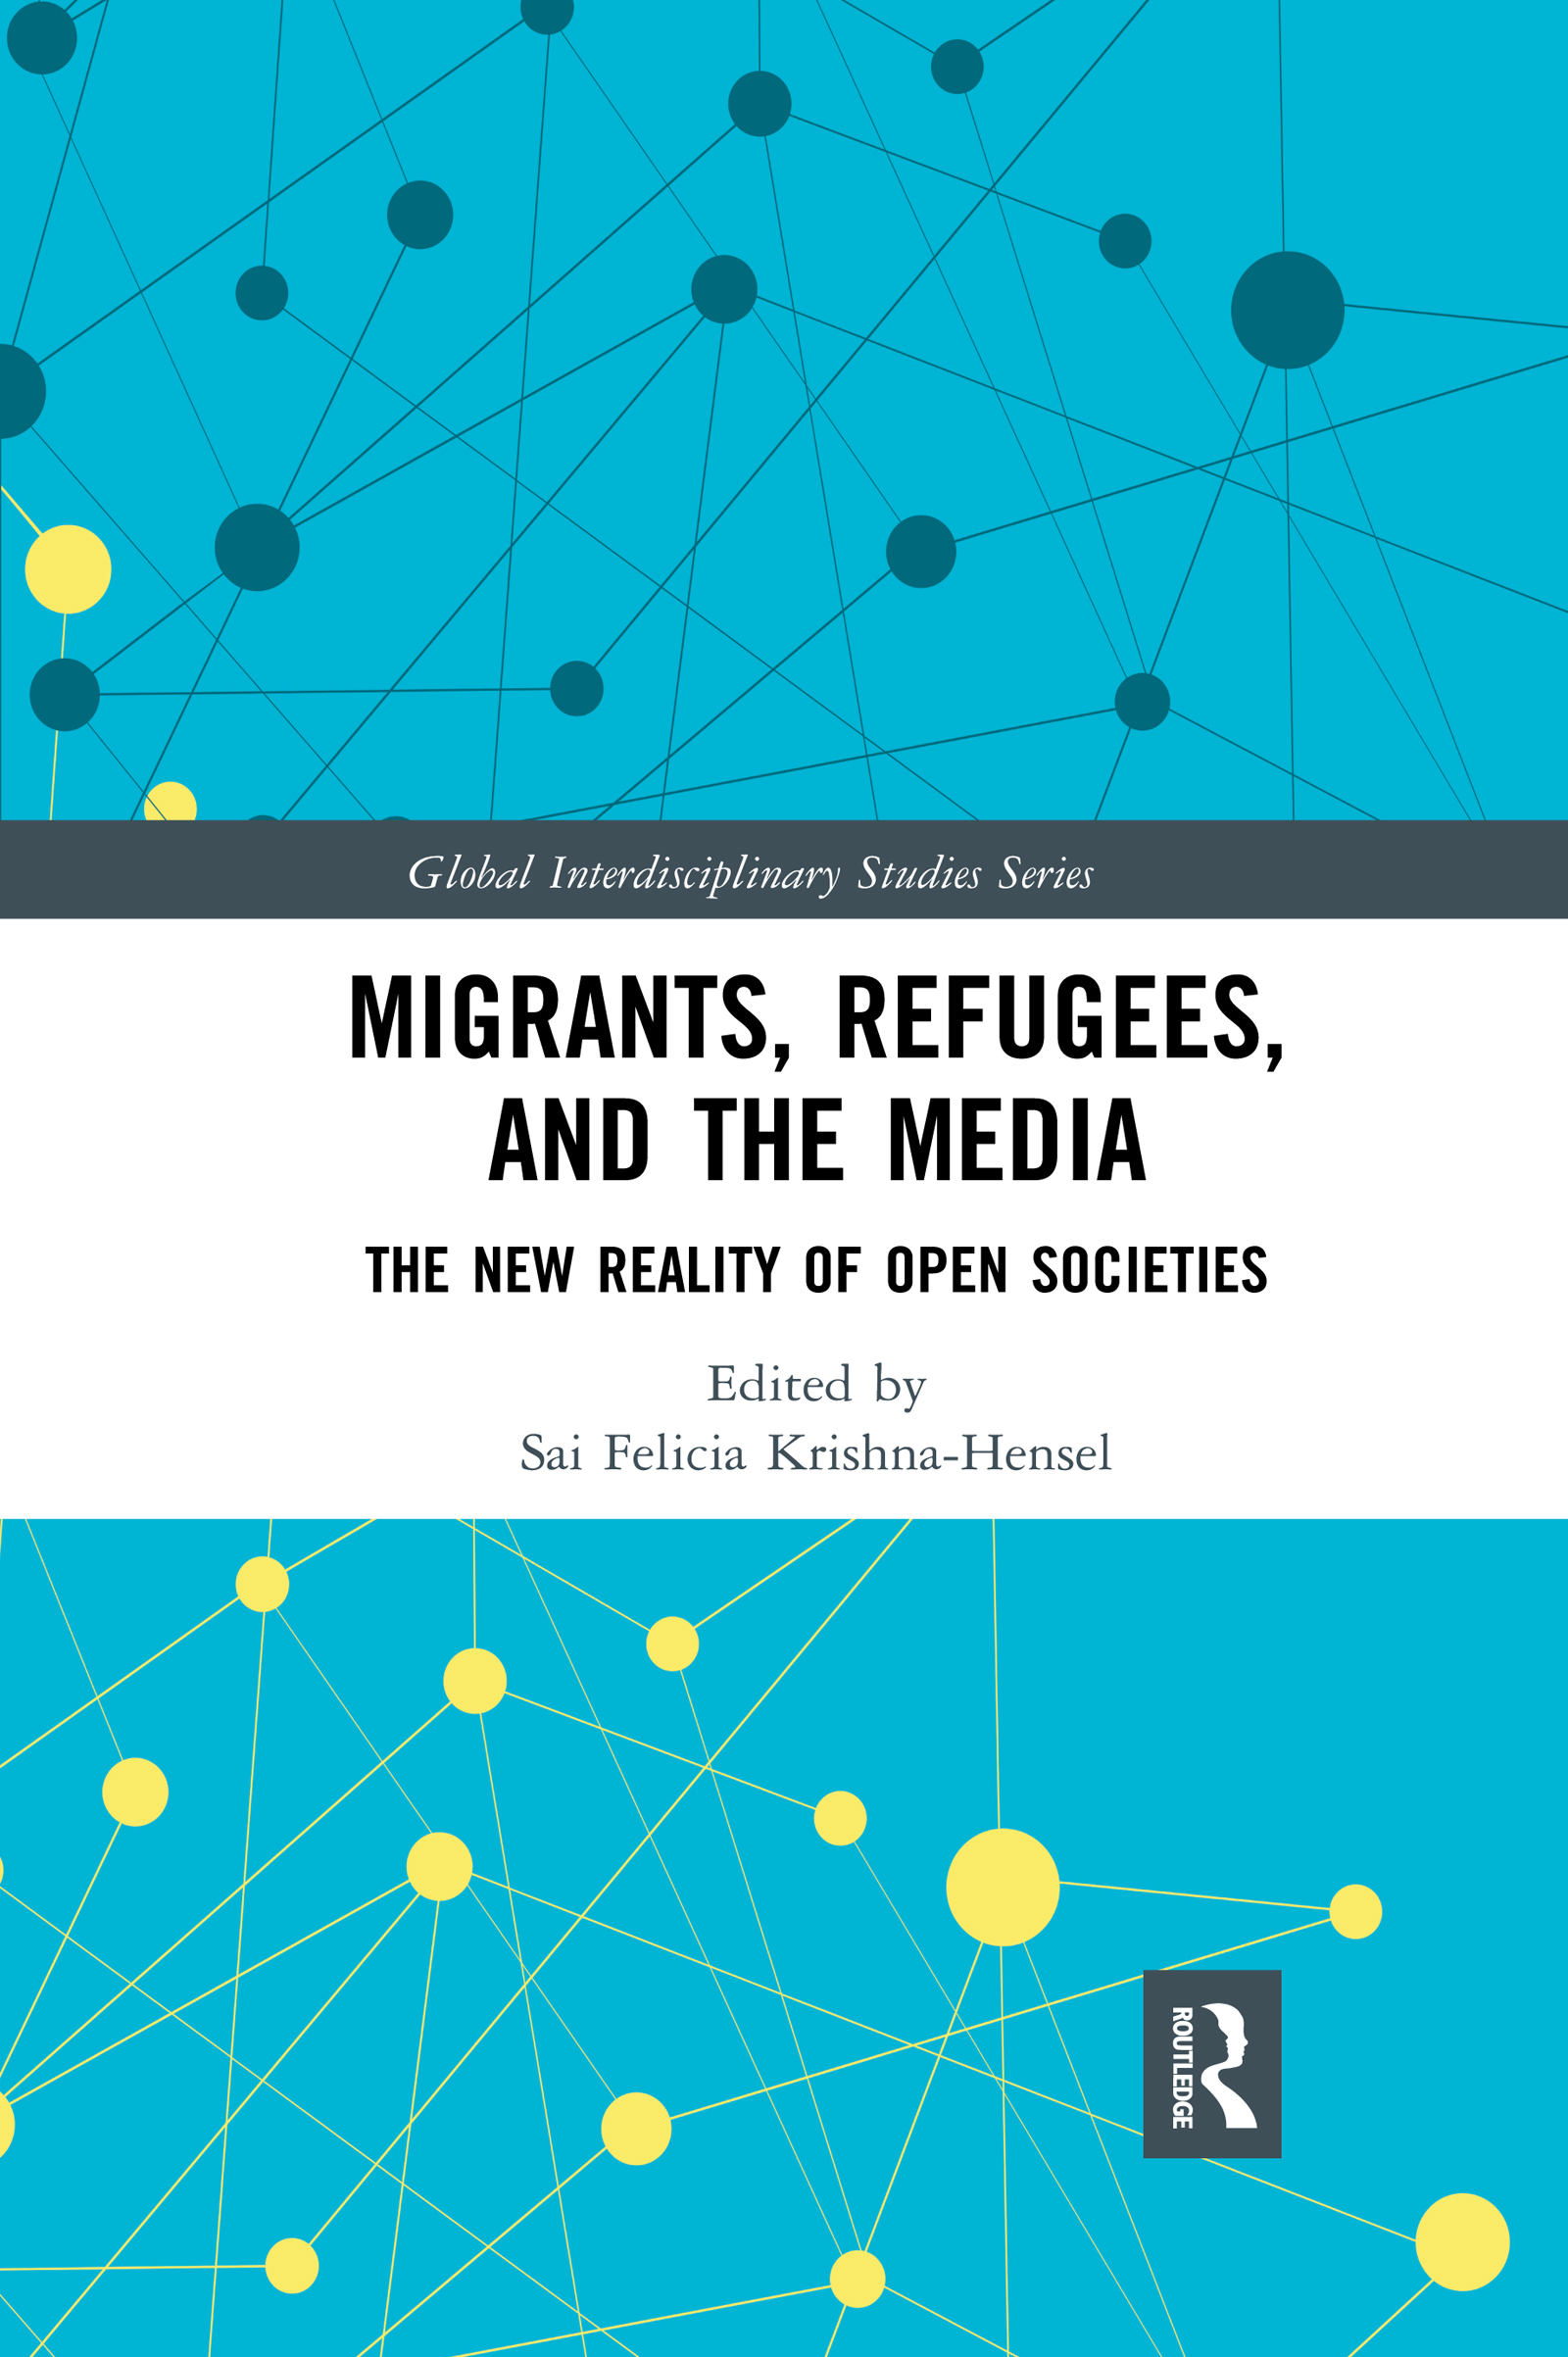 Migrants, Refugees, and the Media